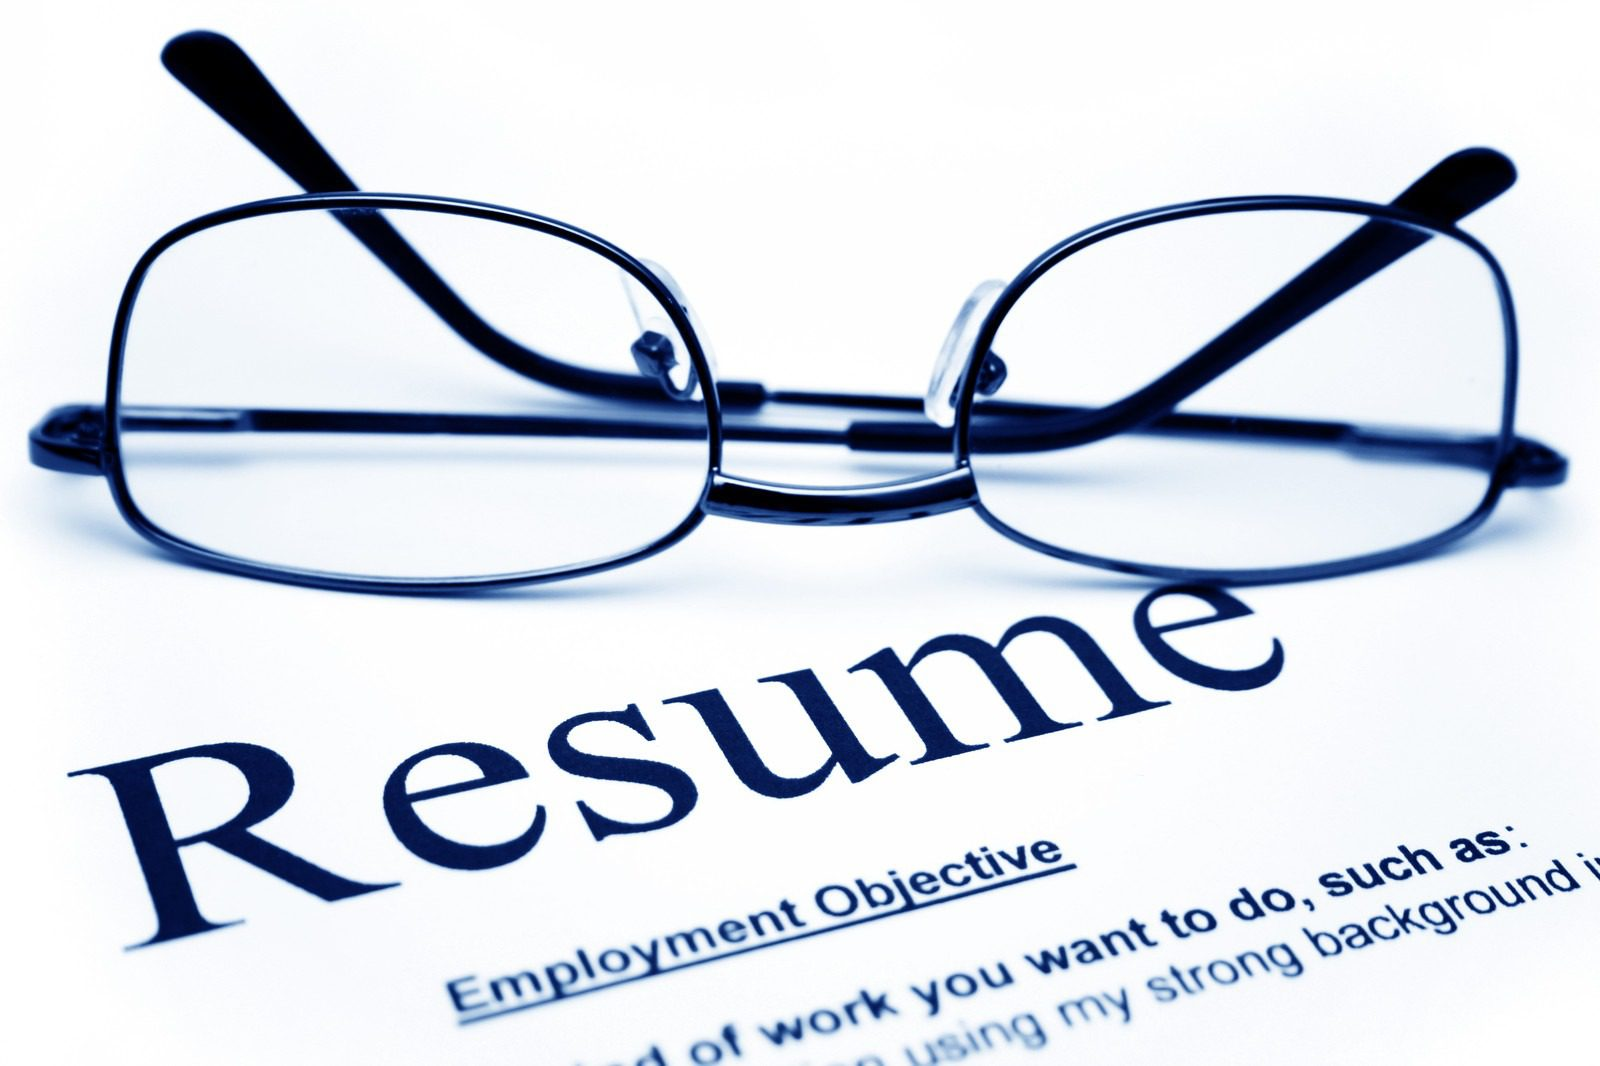 Burn Your Old Resume: How to Get a Job in 2021